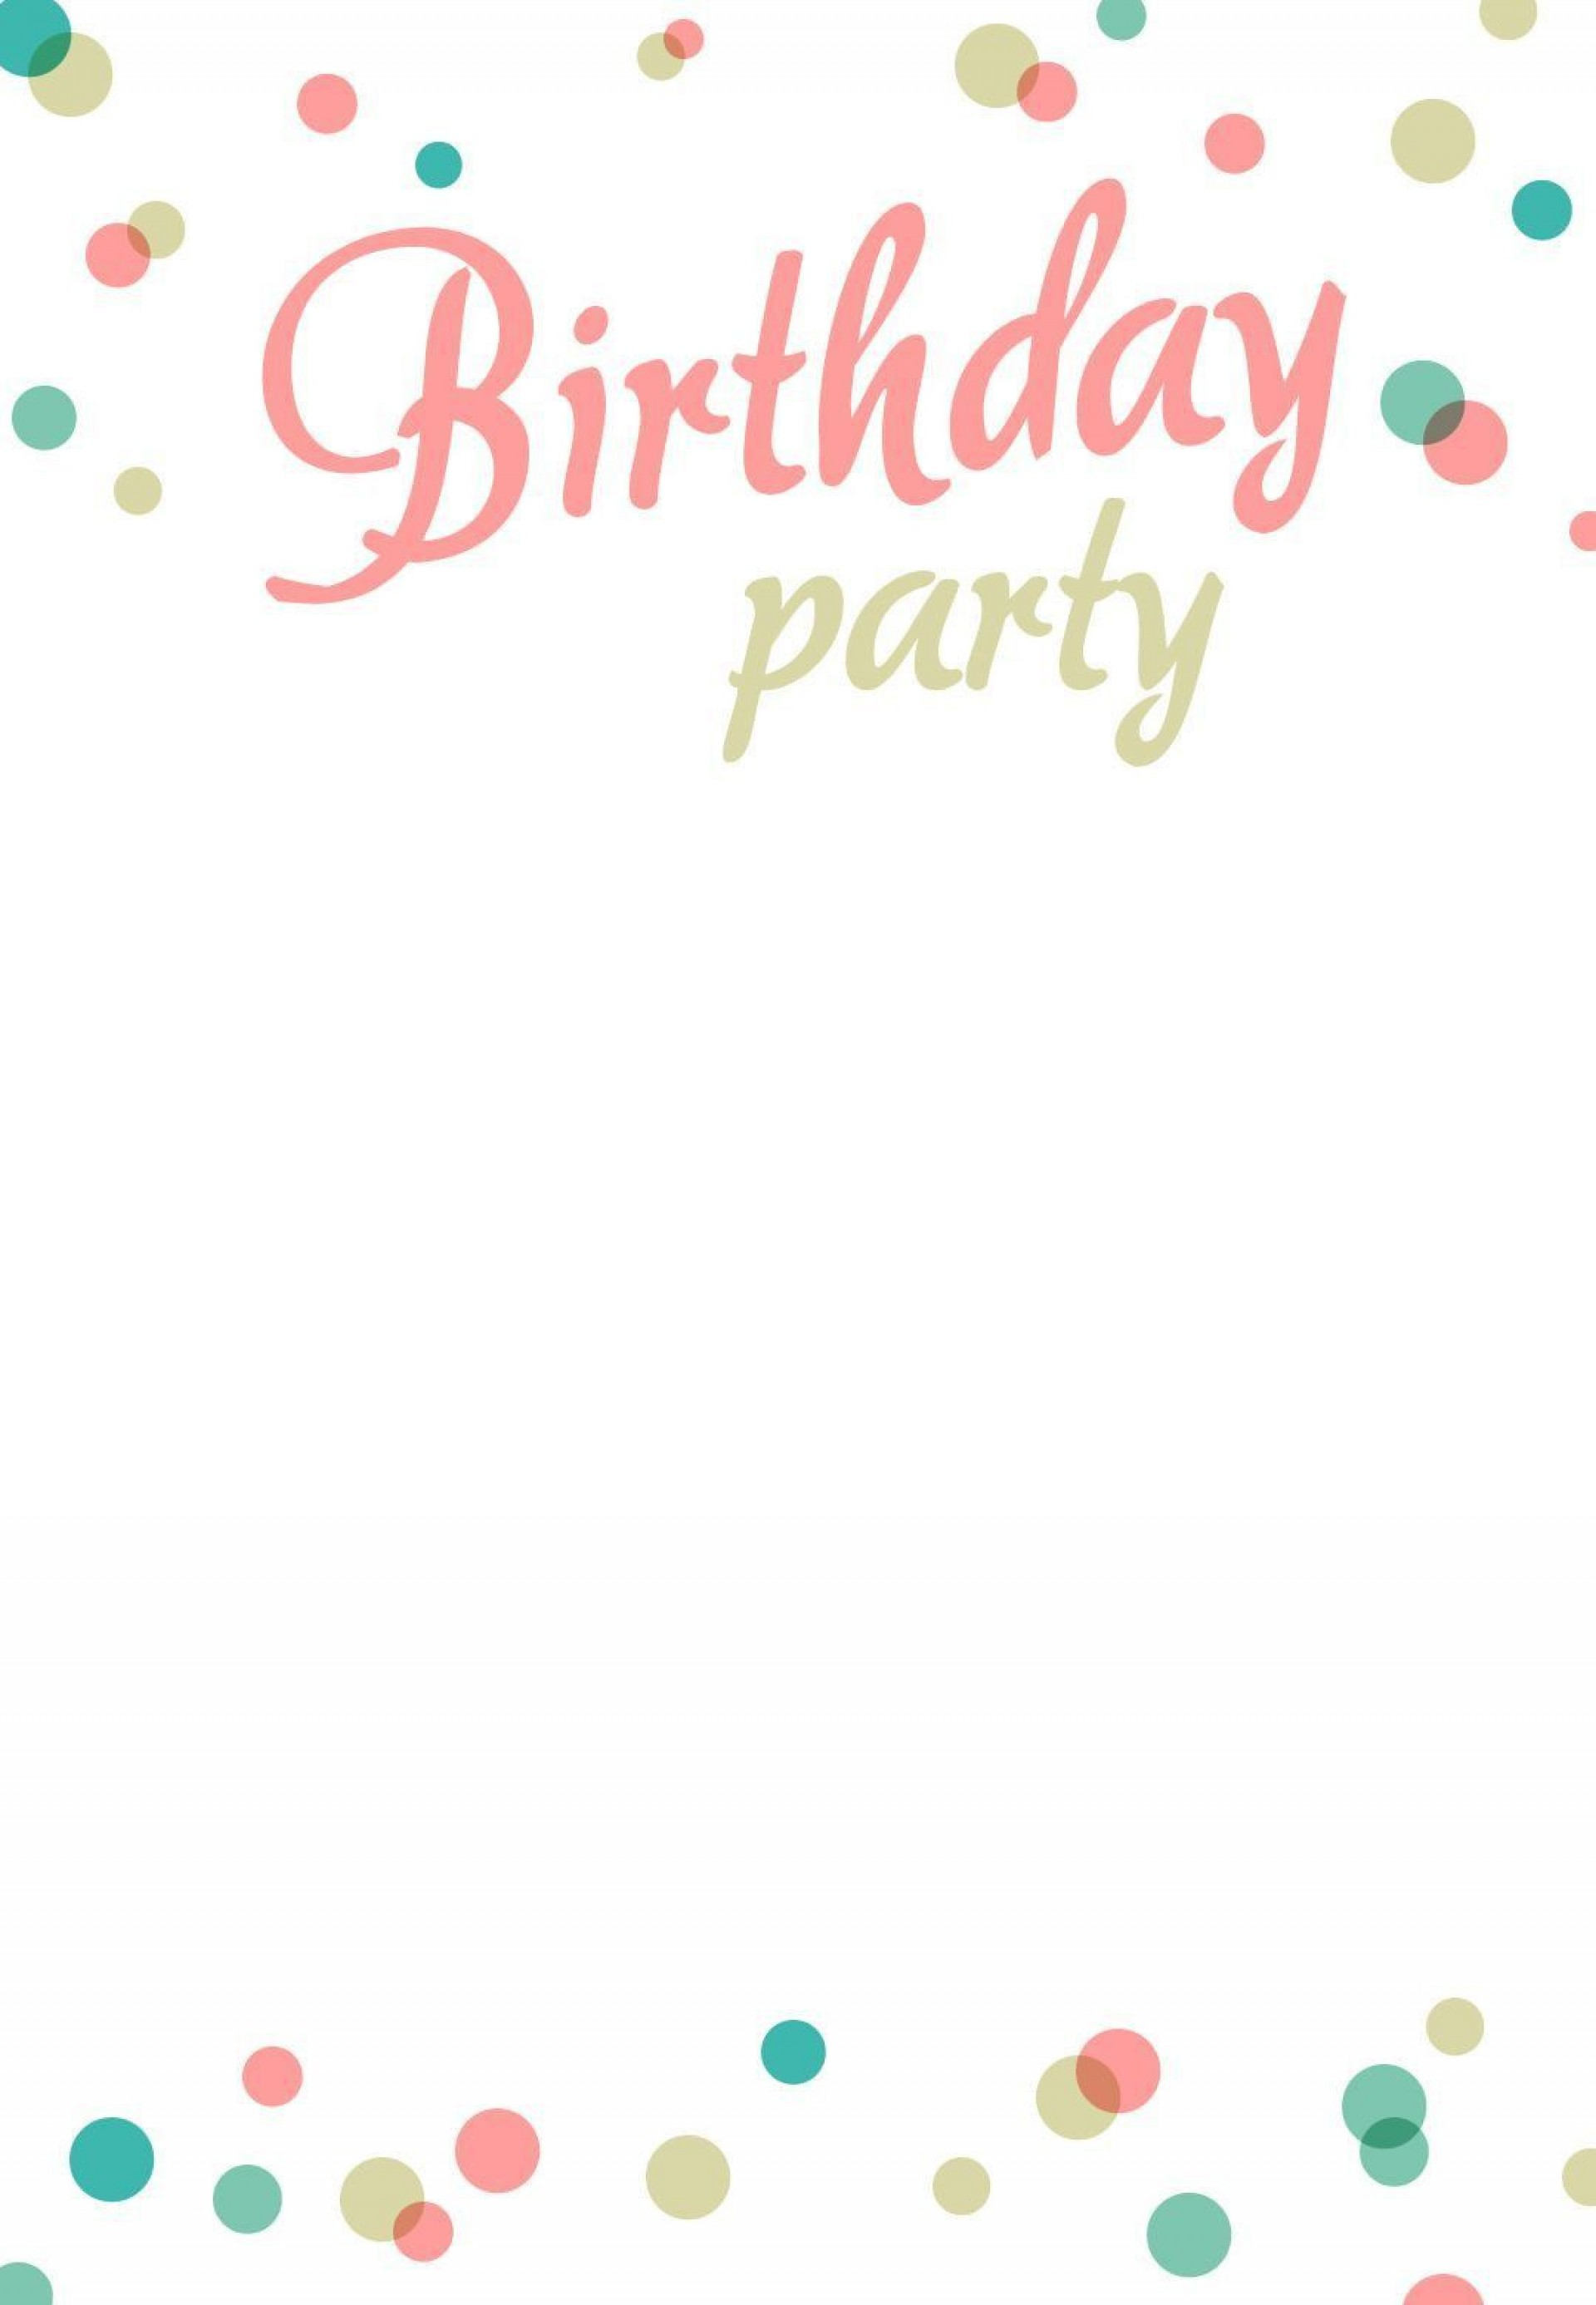 000 Fascinating Free Birthday Party Invitation Template High Definition  Templates Printable 16th Australia Uk1920